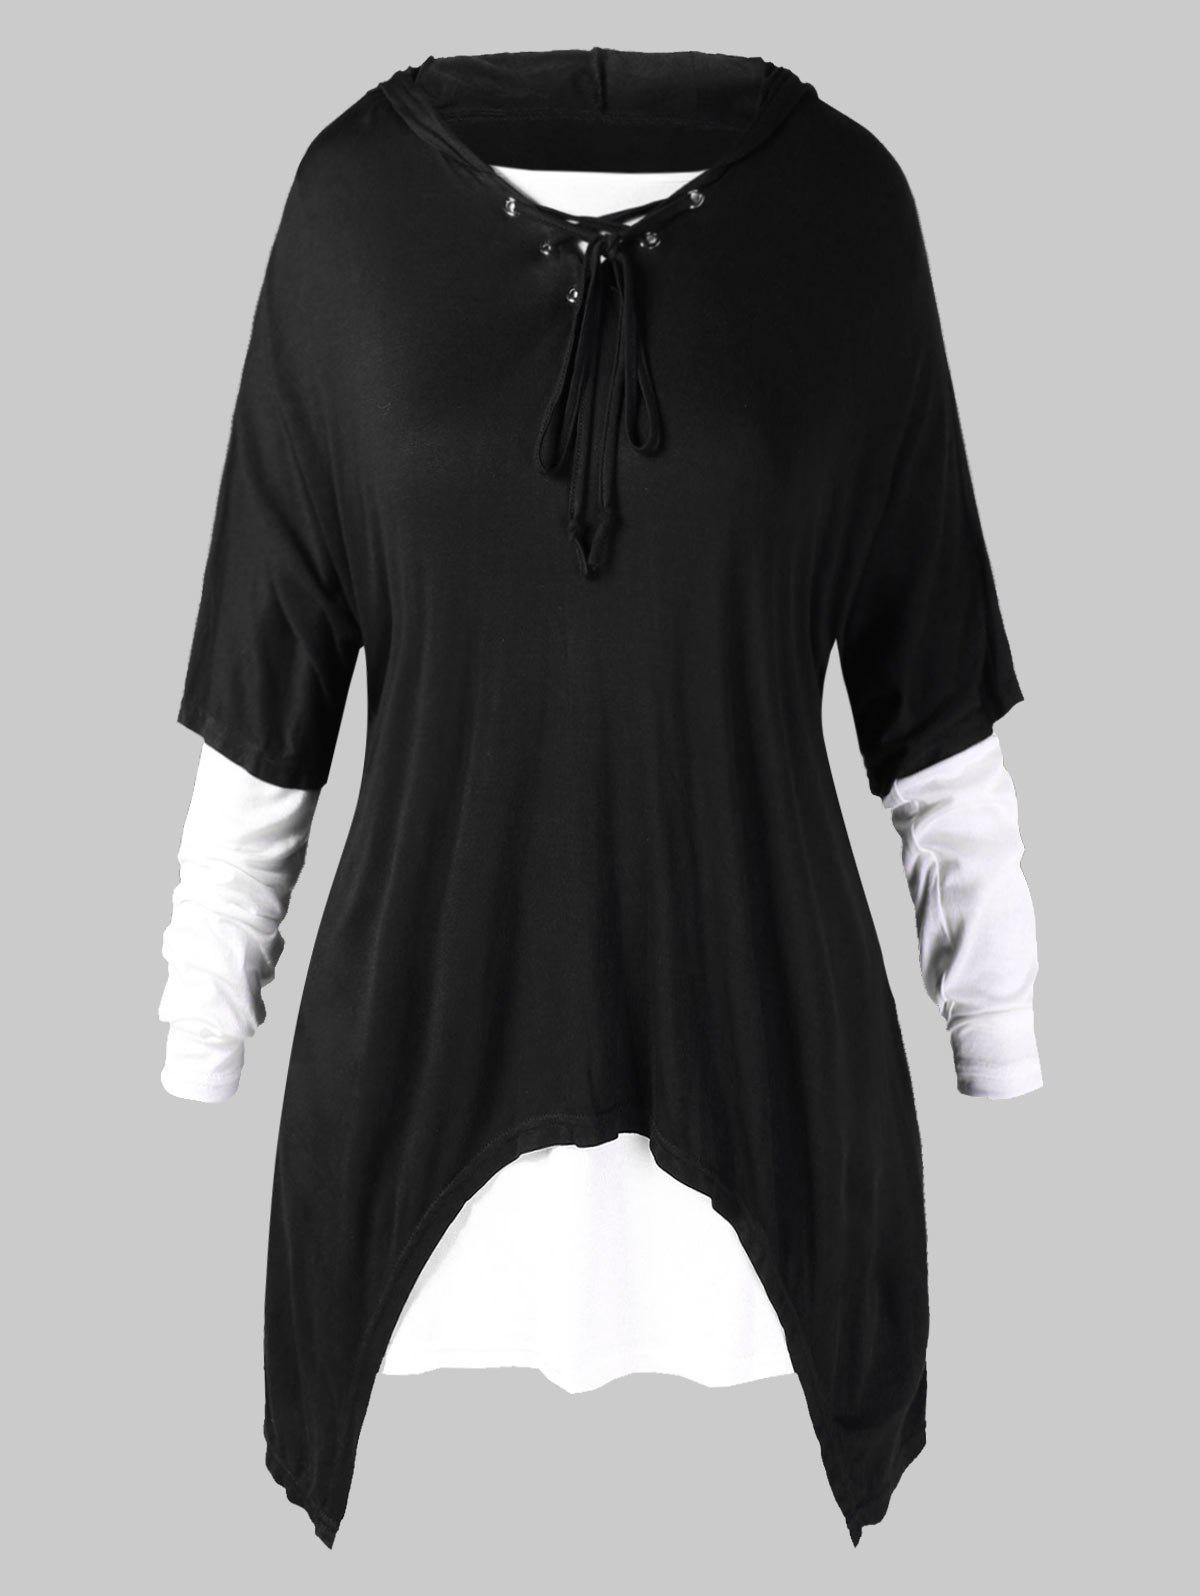 Plus Size Hooded Lace Up Asymmetrical Top with T-shirt - BLACK L